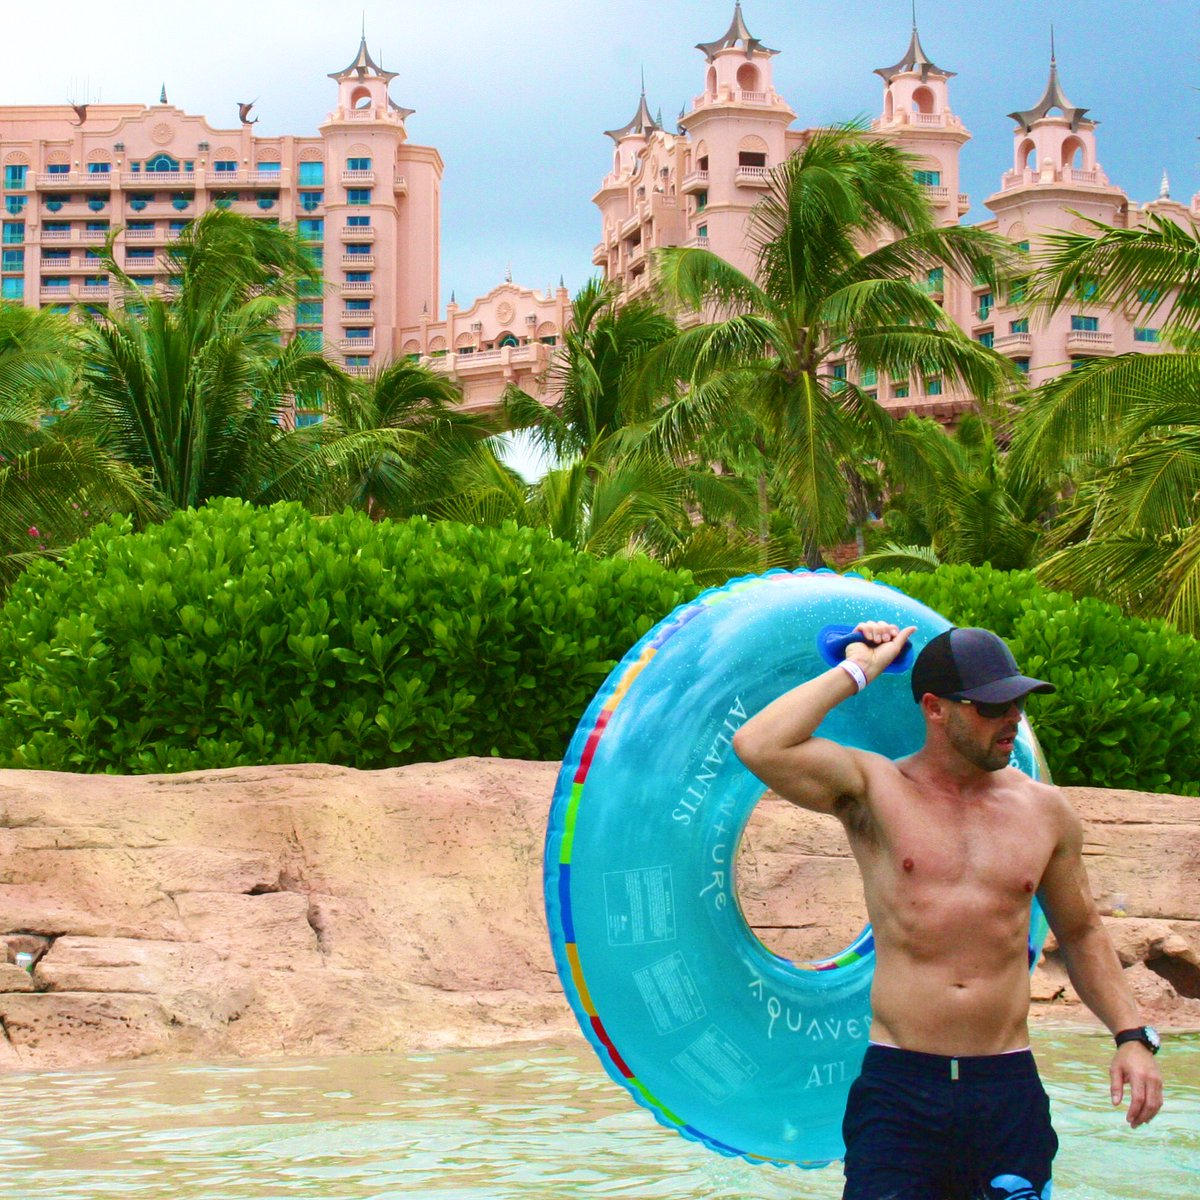 this water tube is so heavy.  #atlantis #tbt